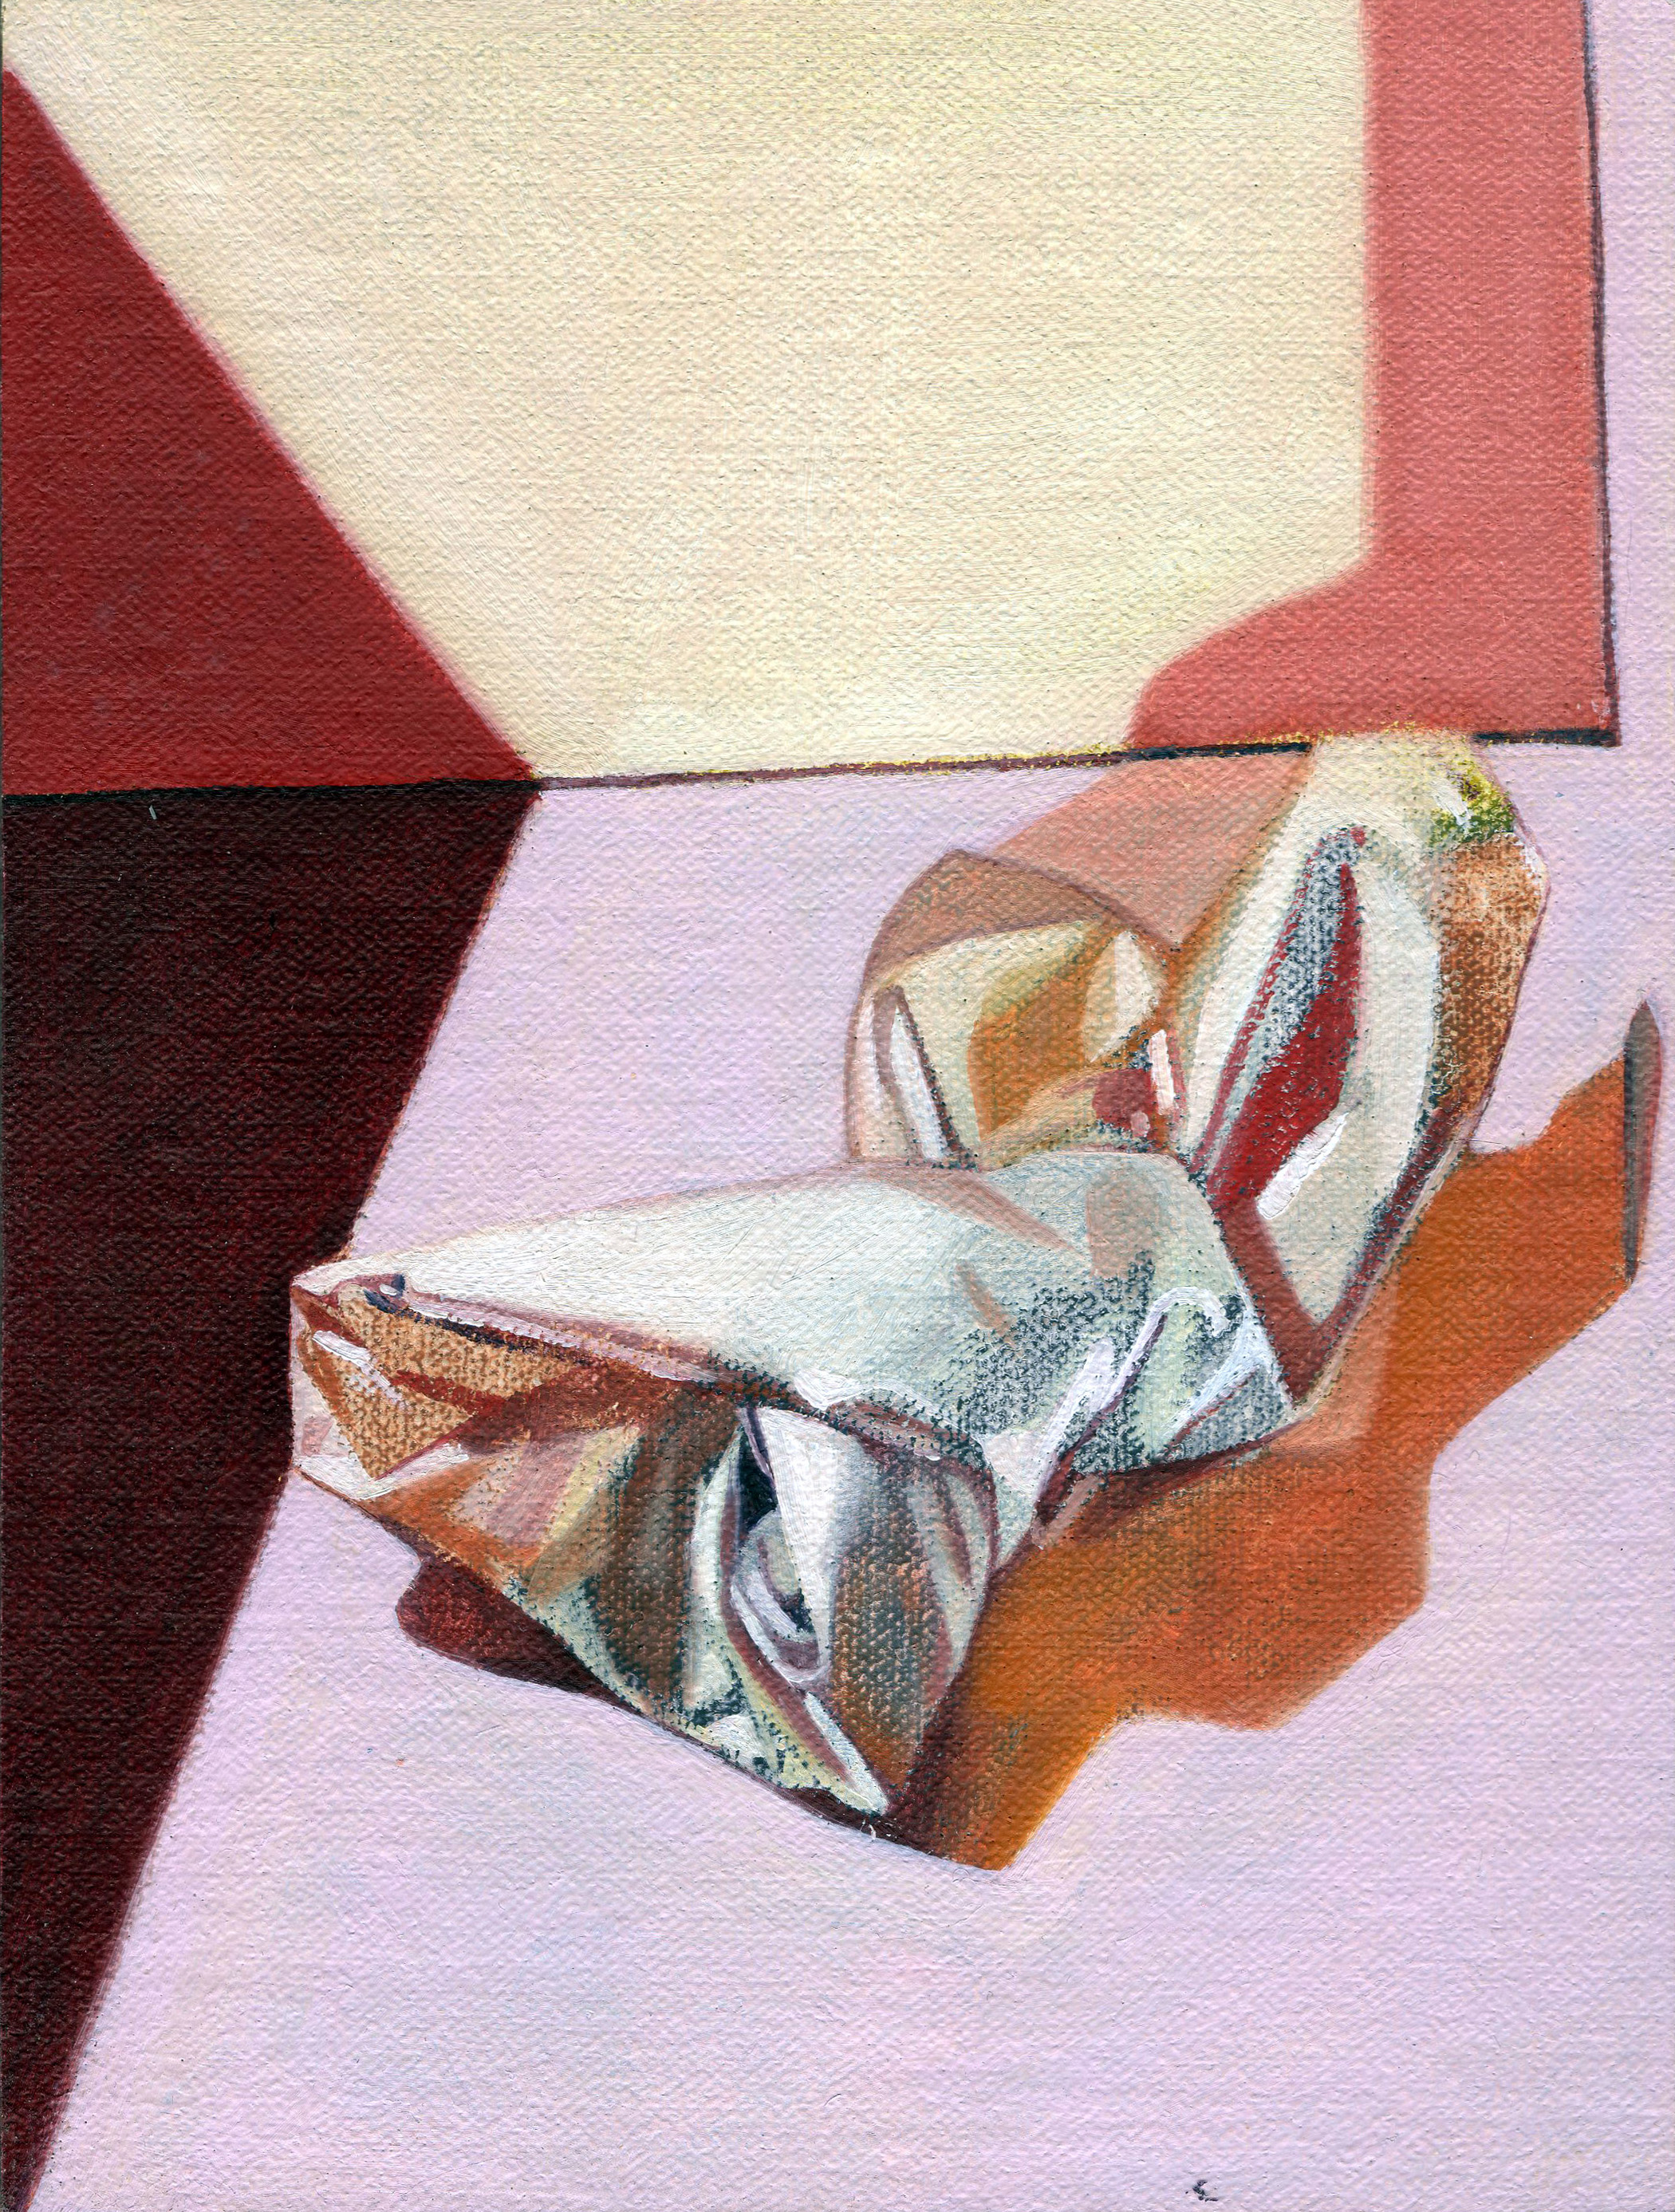 The Hospice (Red), 2014  oil on linen, 8 x 6in.